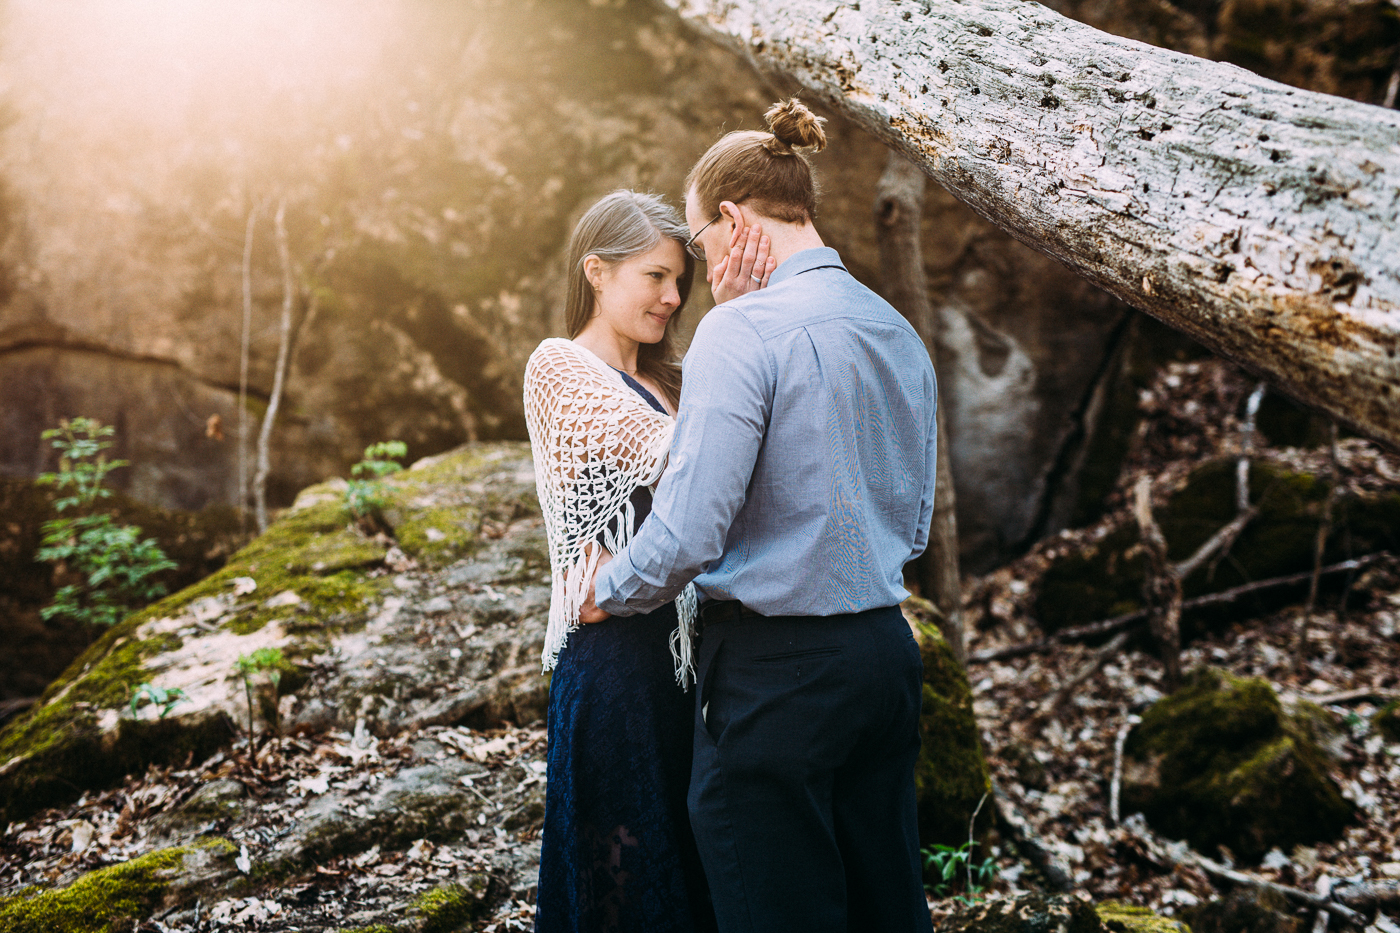 erinwheat photography-jplaurenelopement7201